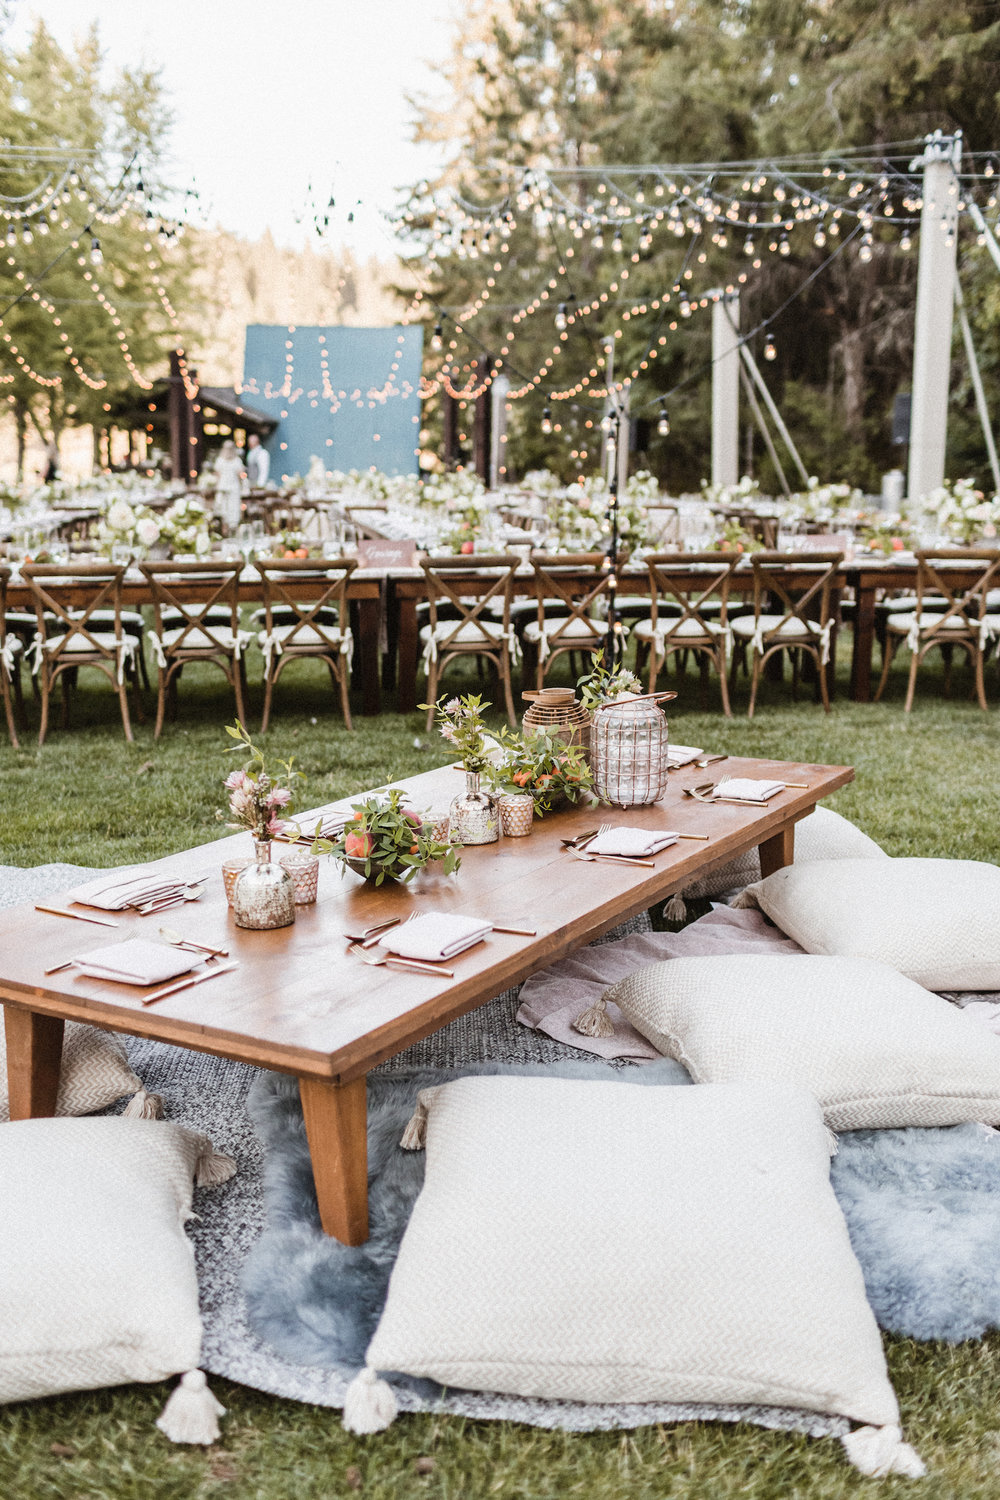 Julianne Hough and Brooks Laich Wedding - Wild Bloom Floral - Sarah Falugo Photography - Simply Troy Event Design 47.jpeg